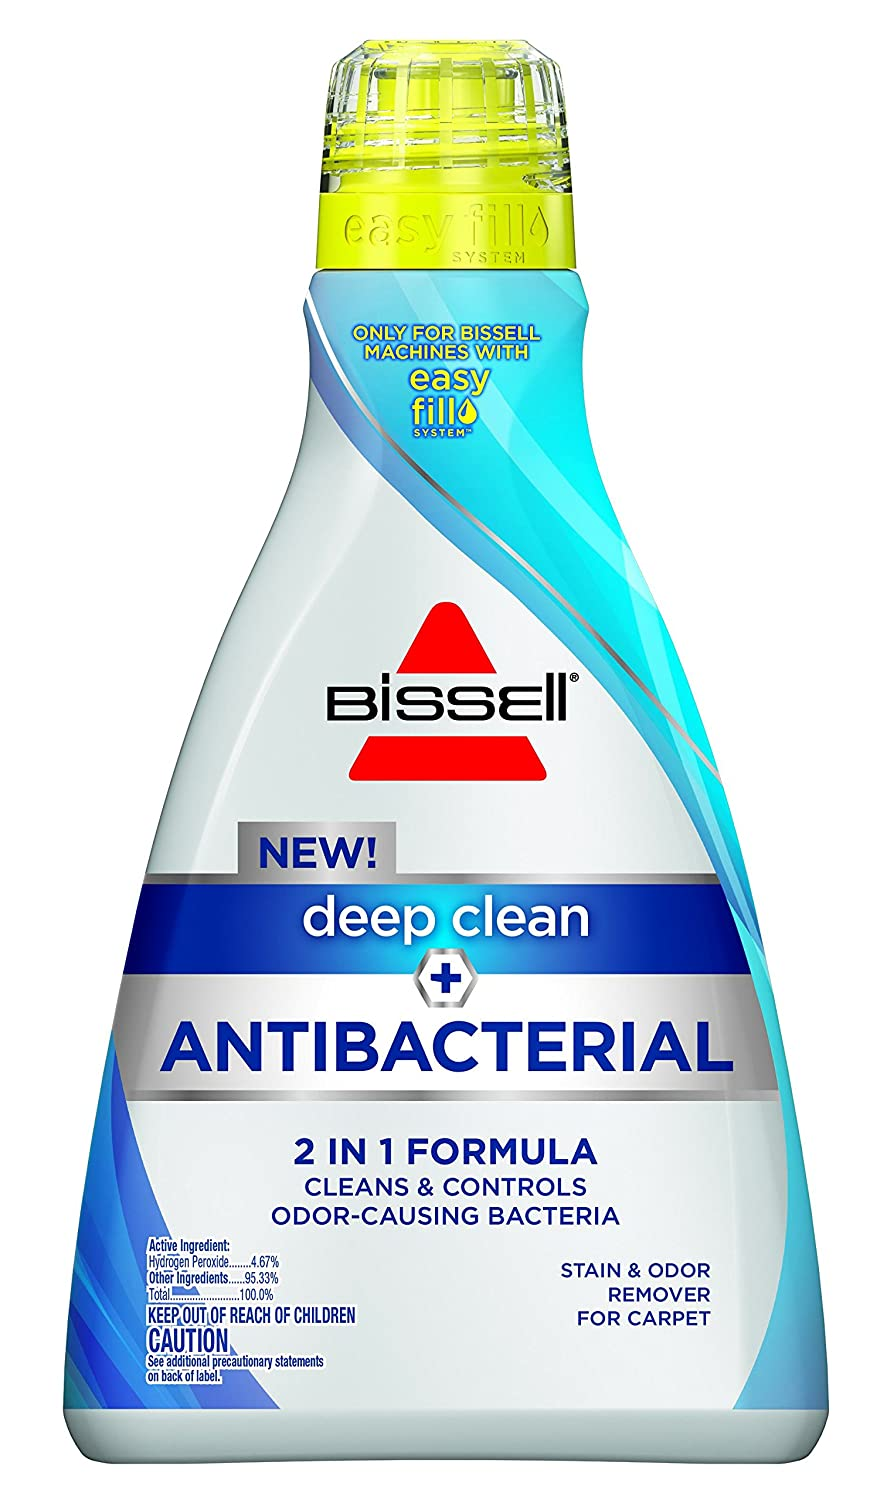 2. Bissell Antibacterial 2-in-1 Carpet Cleanser